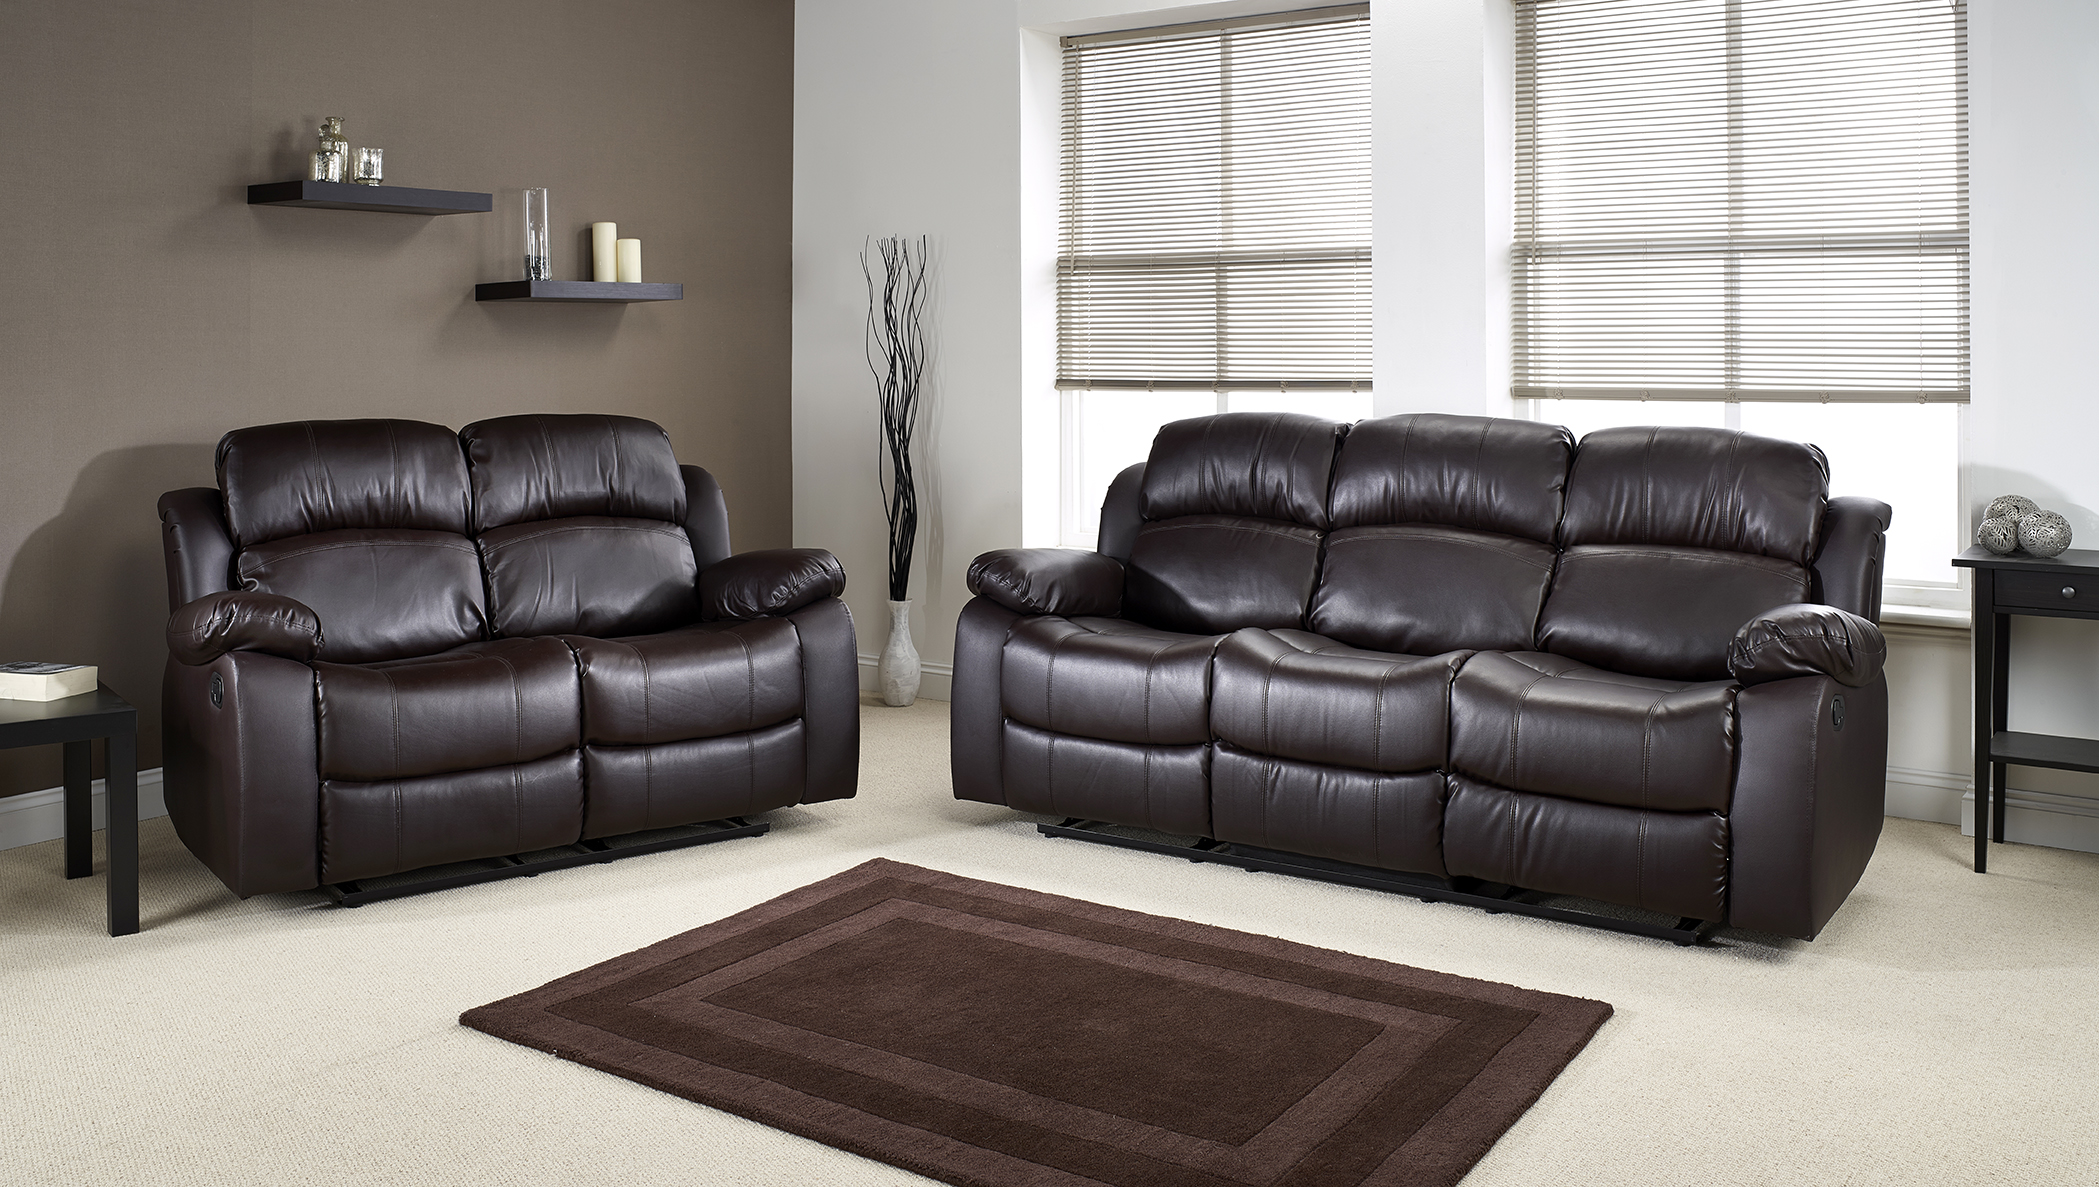 Virginia 3 and 2 Seater Bonded Leather Recliner Sofa set ...